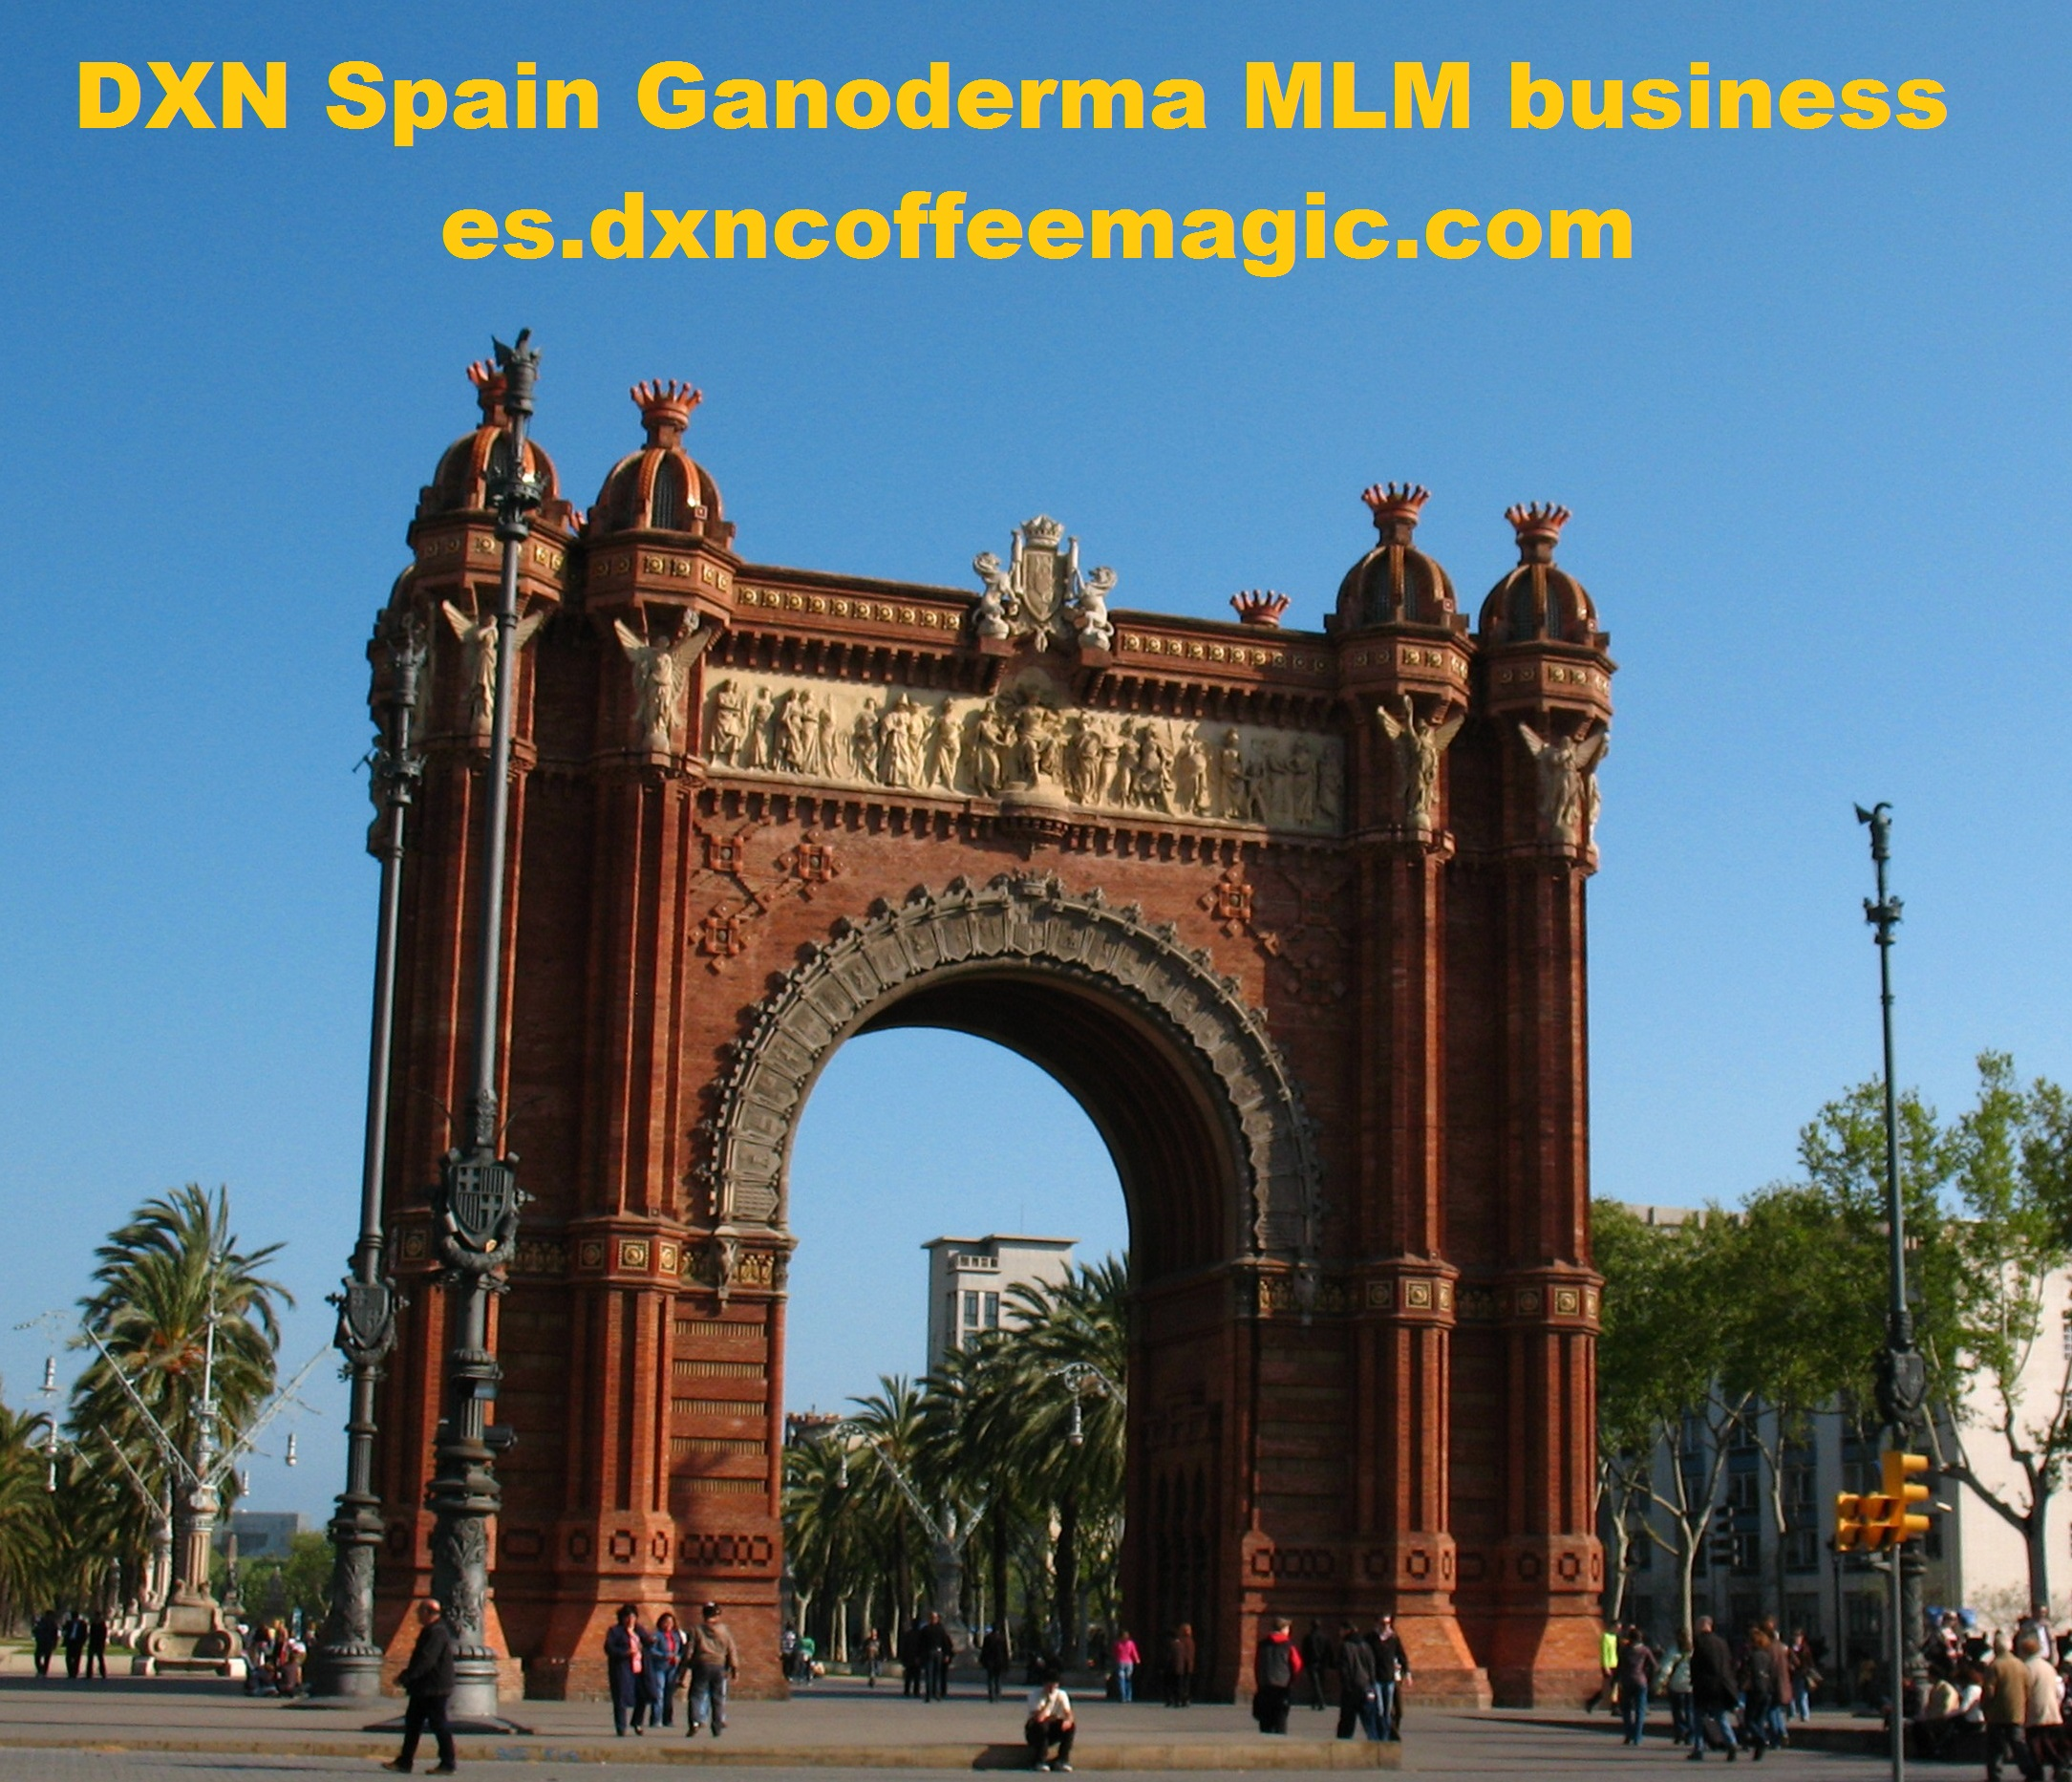 dxn spain mlm business